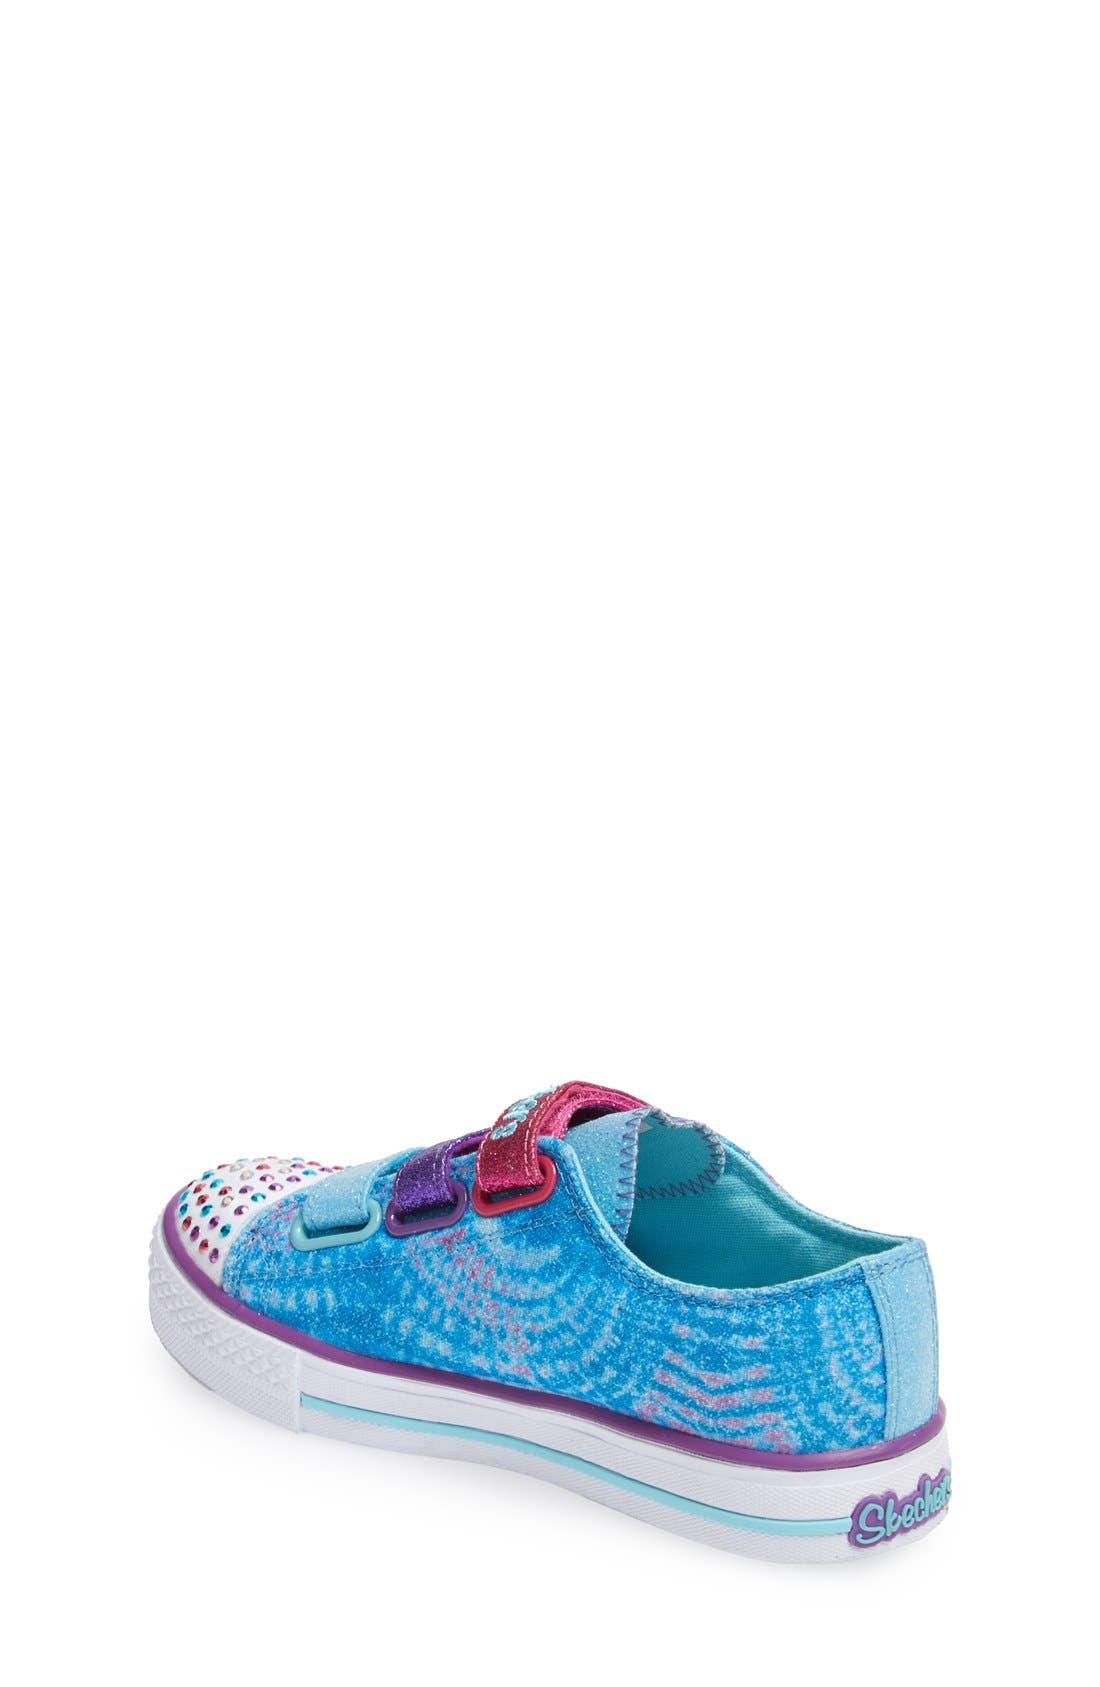 Alternate Image 2  - SKECHERS 'Twinkle Toes' Light-Up Sneaker (Toddler & Little Kid)